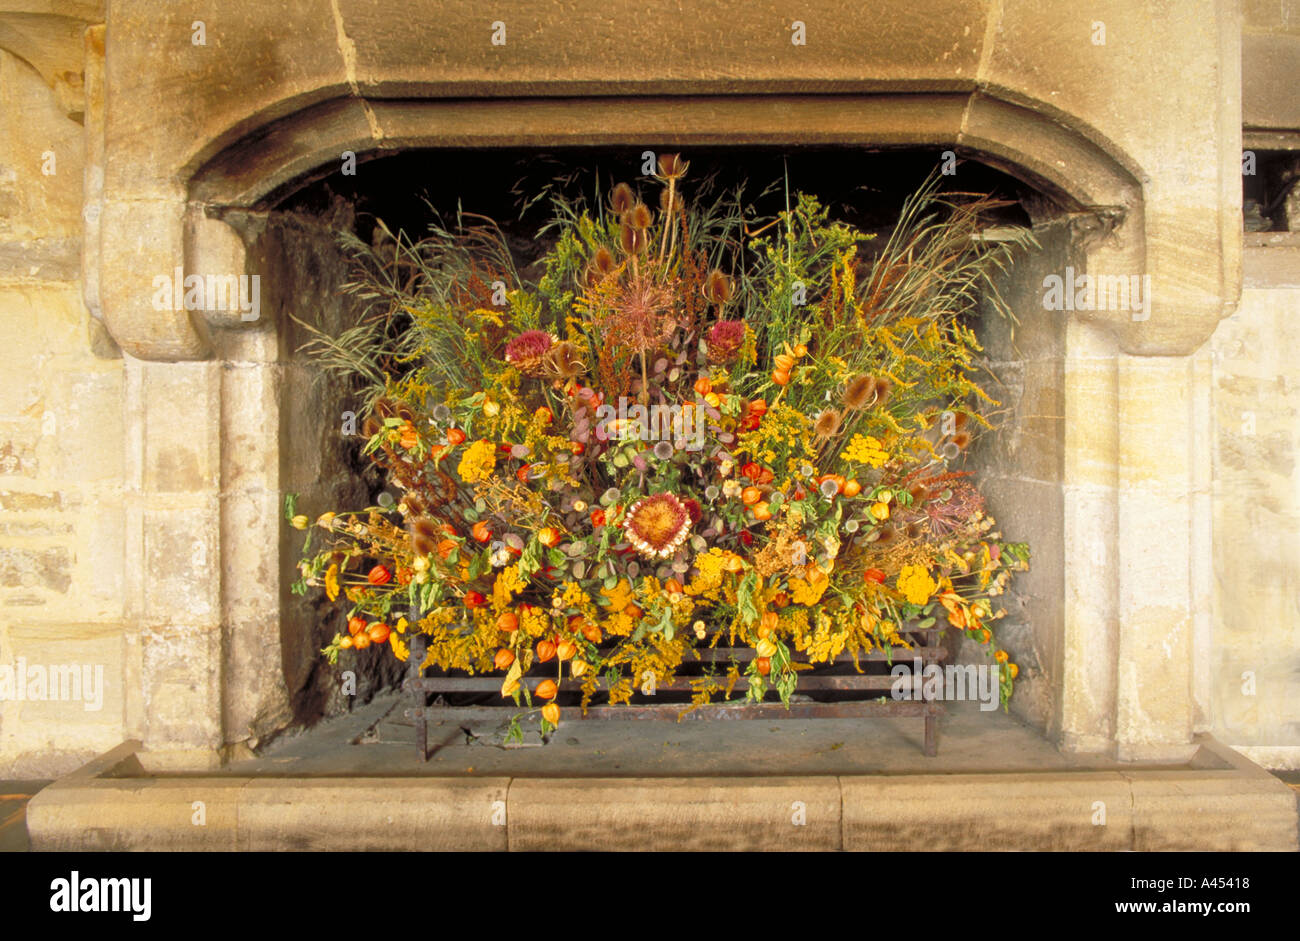 Flower Arrangement In Fireplace Stock Photo Royalty Free